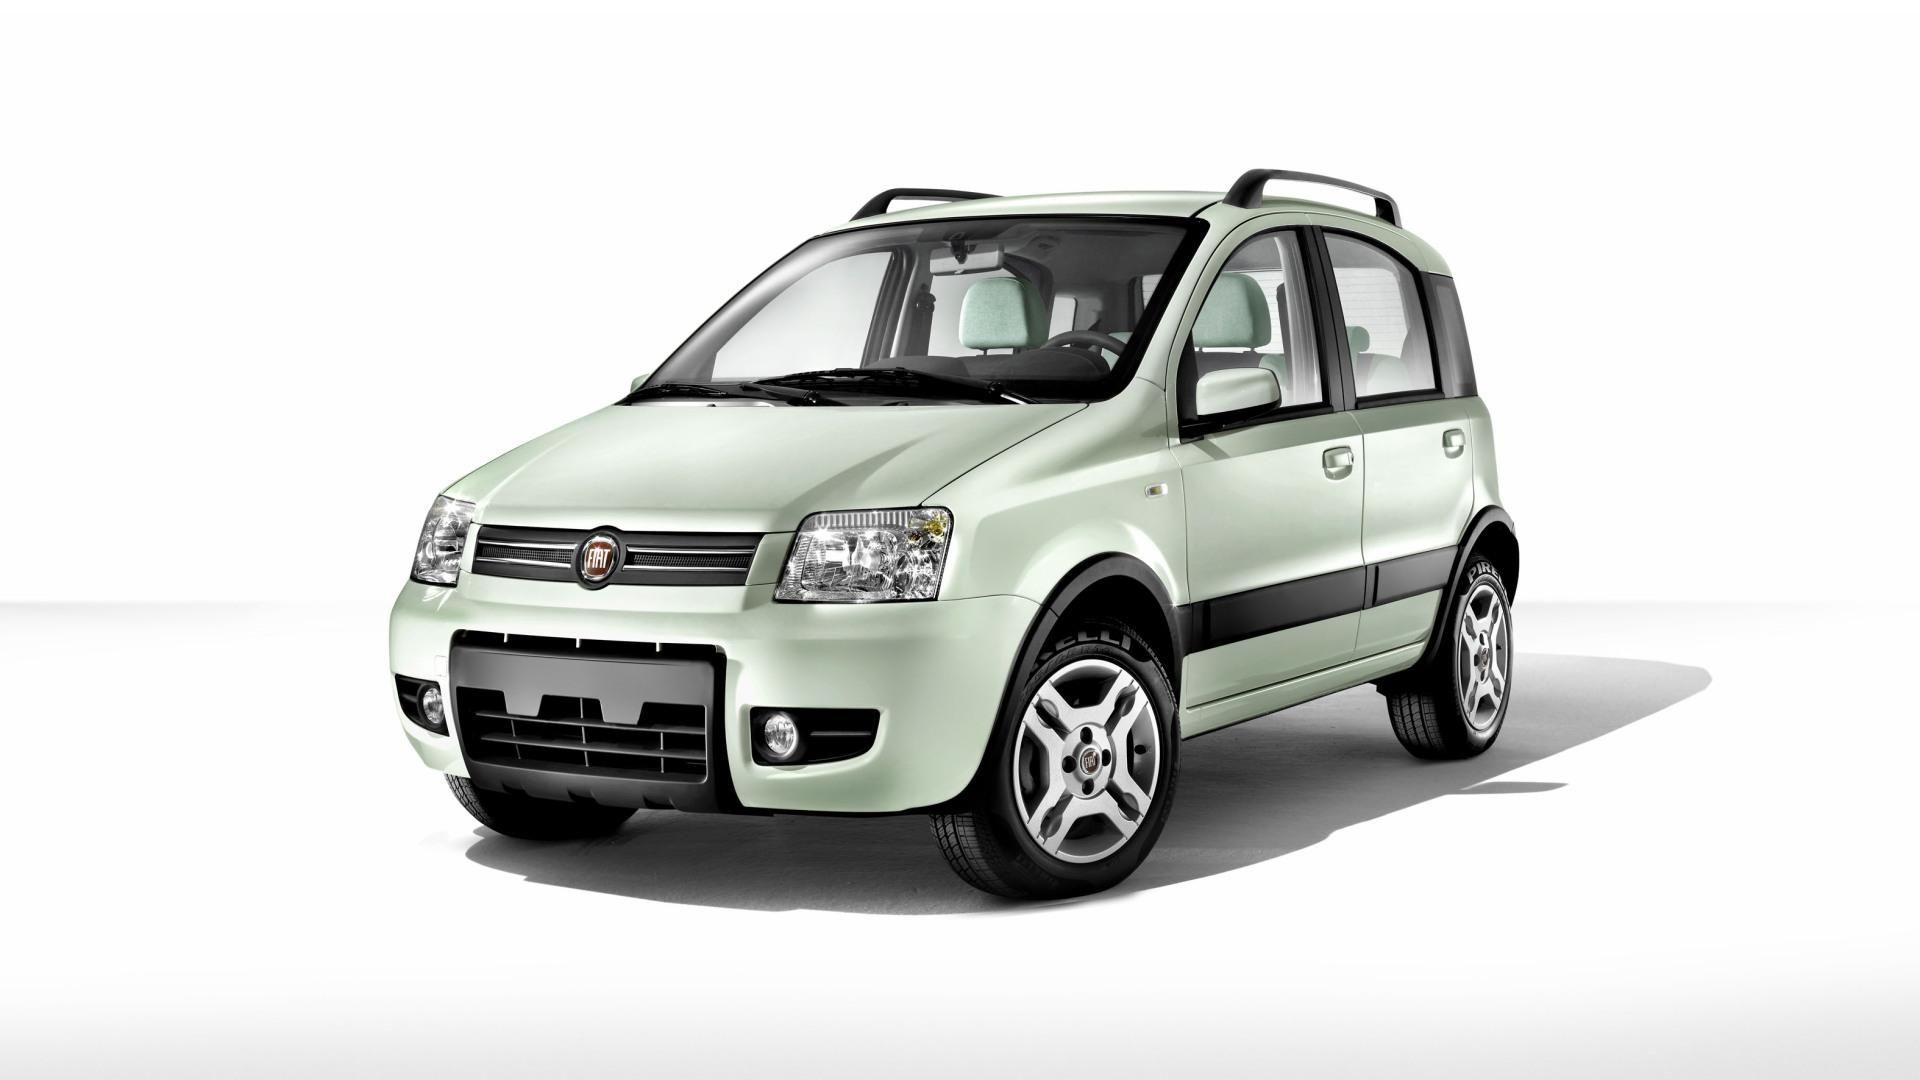 2009 Fiat Panda News and Information